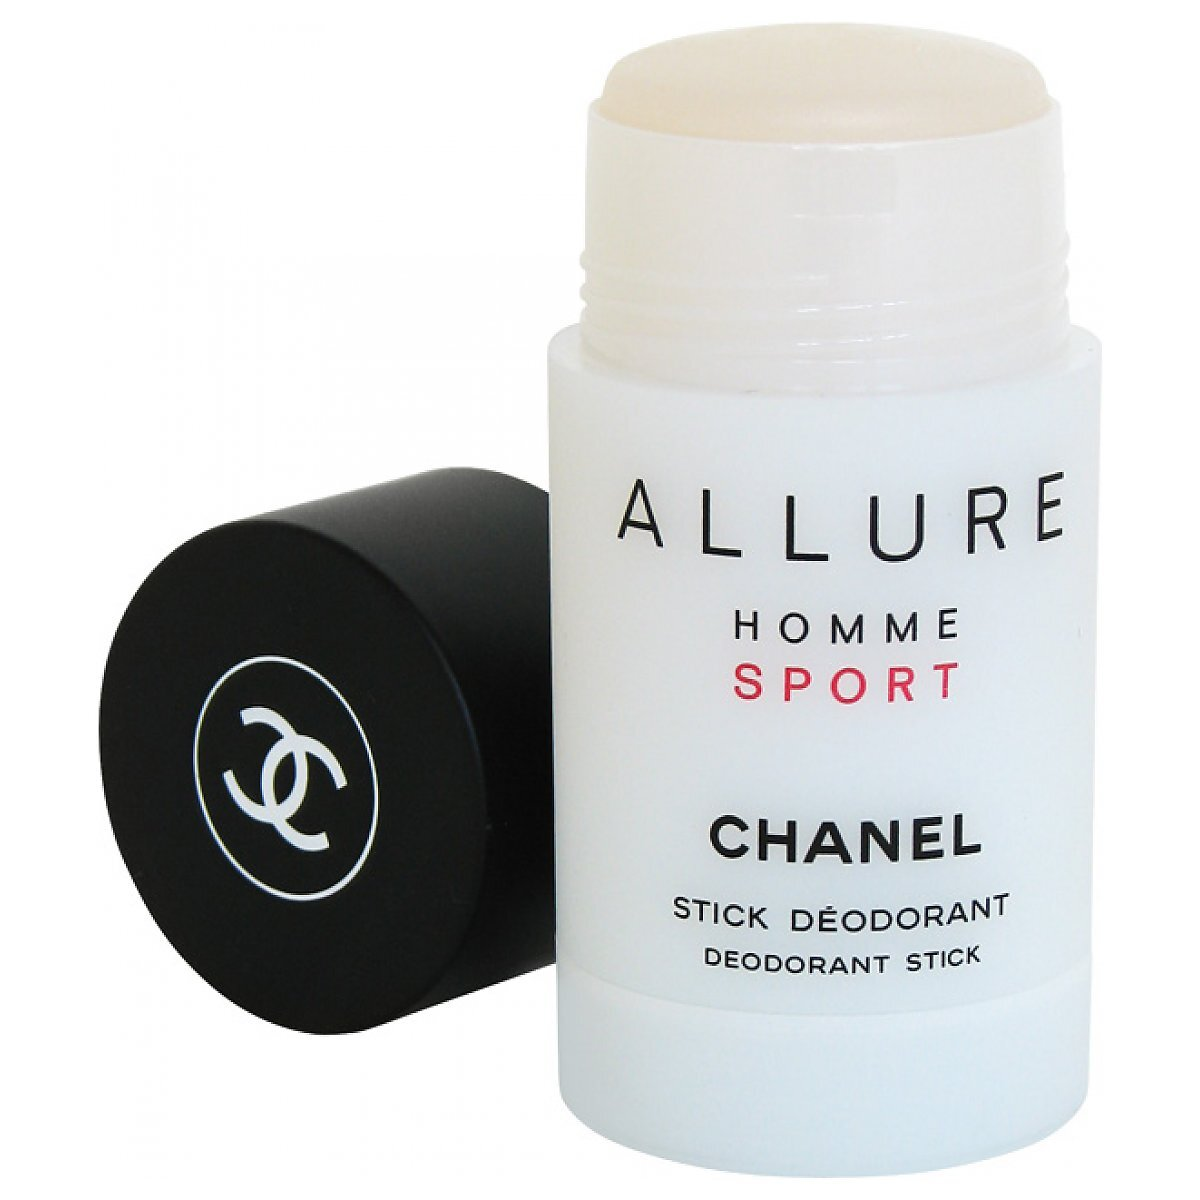 chanel allure homme sport dezodorant sztyft 75ml 60g. Black Bedroom Furniture Sets. Home Design Ideas